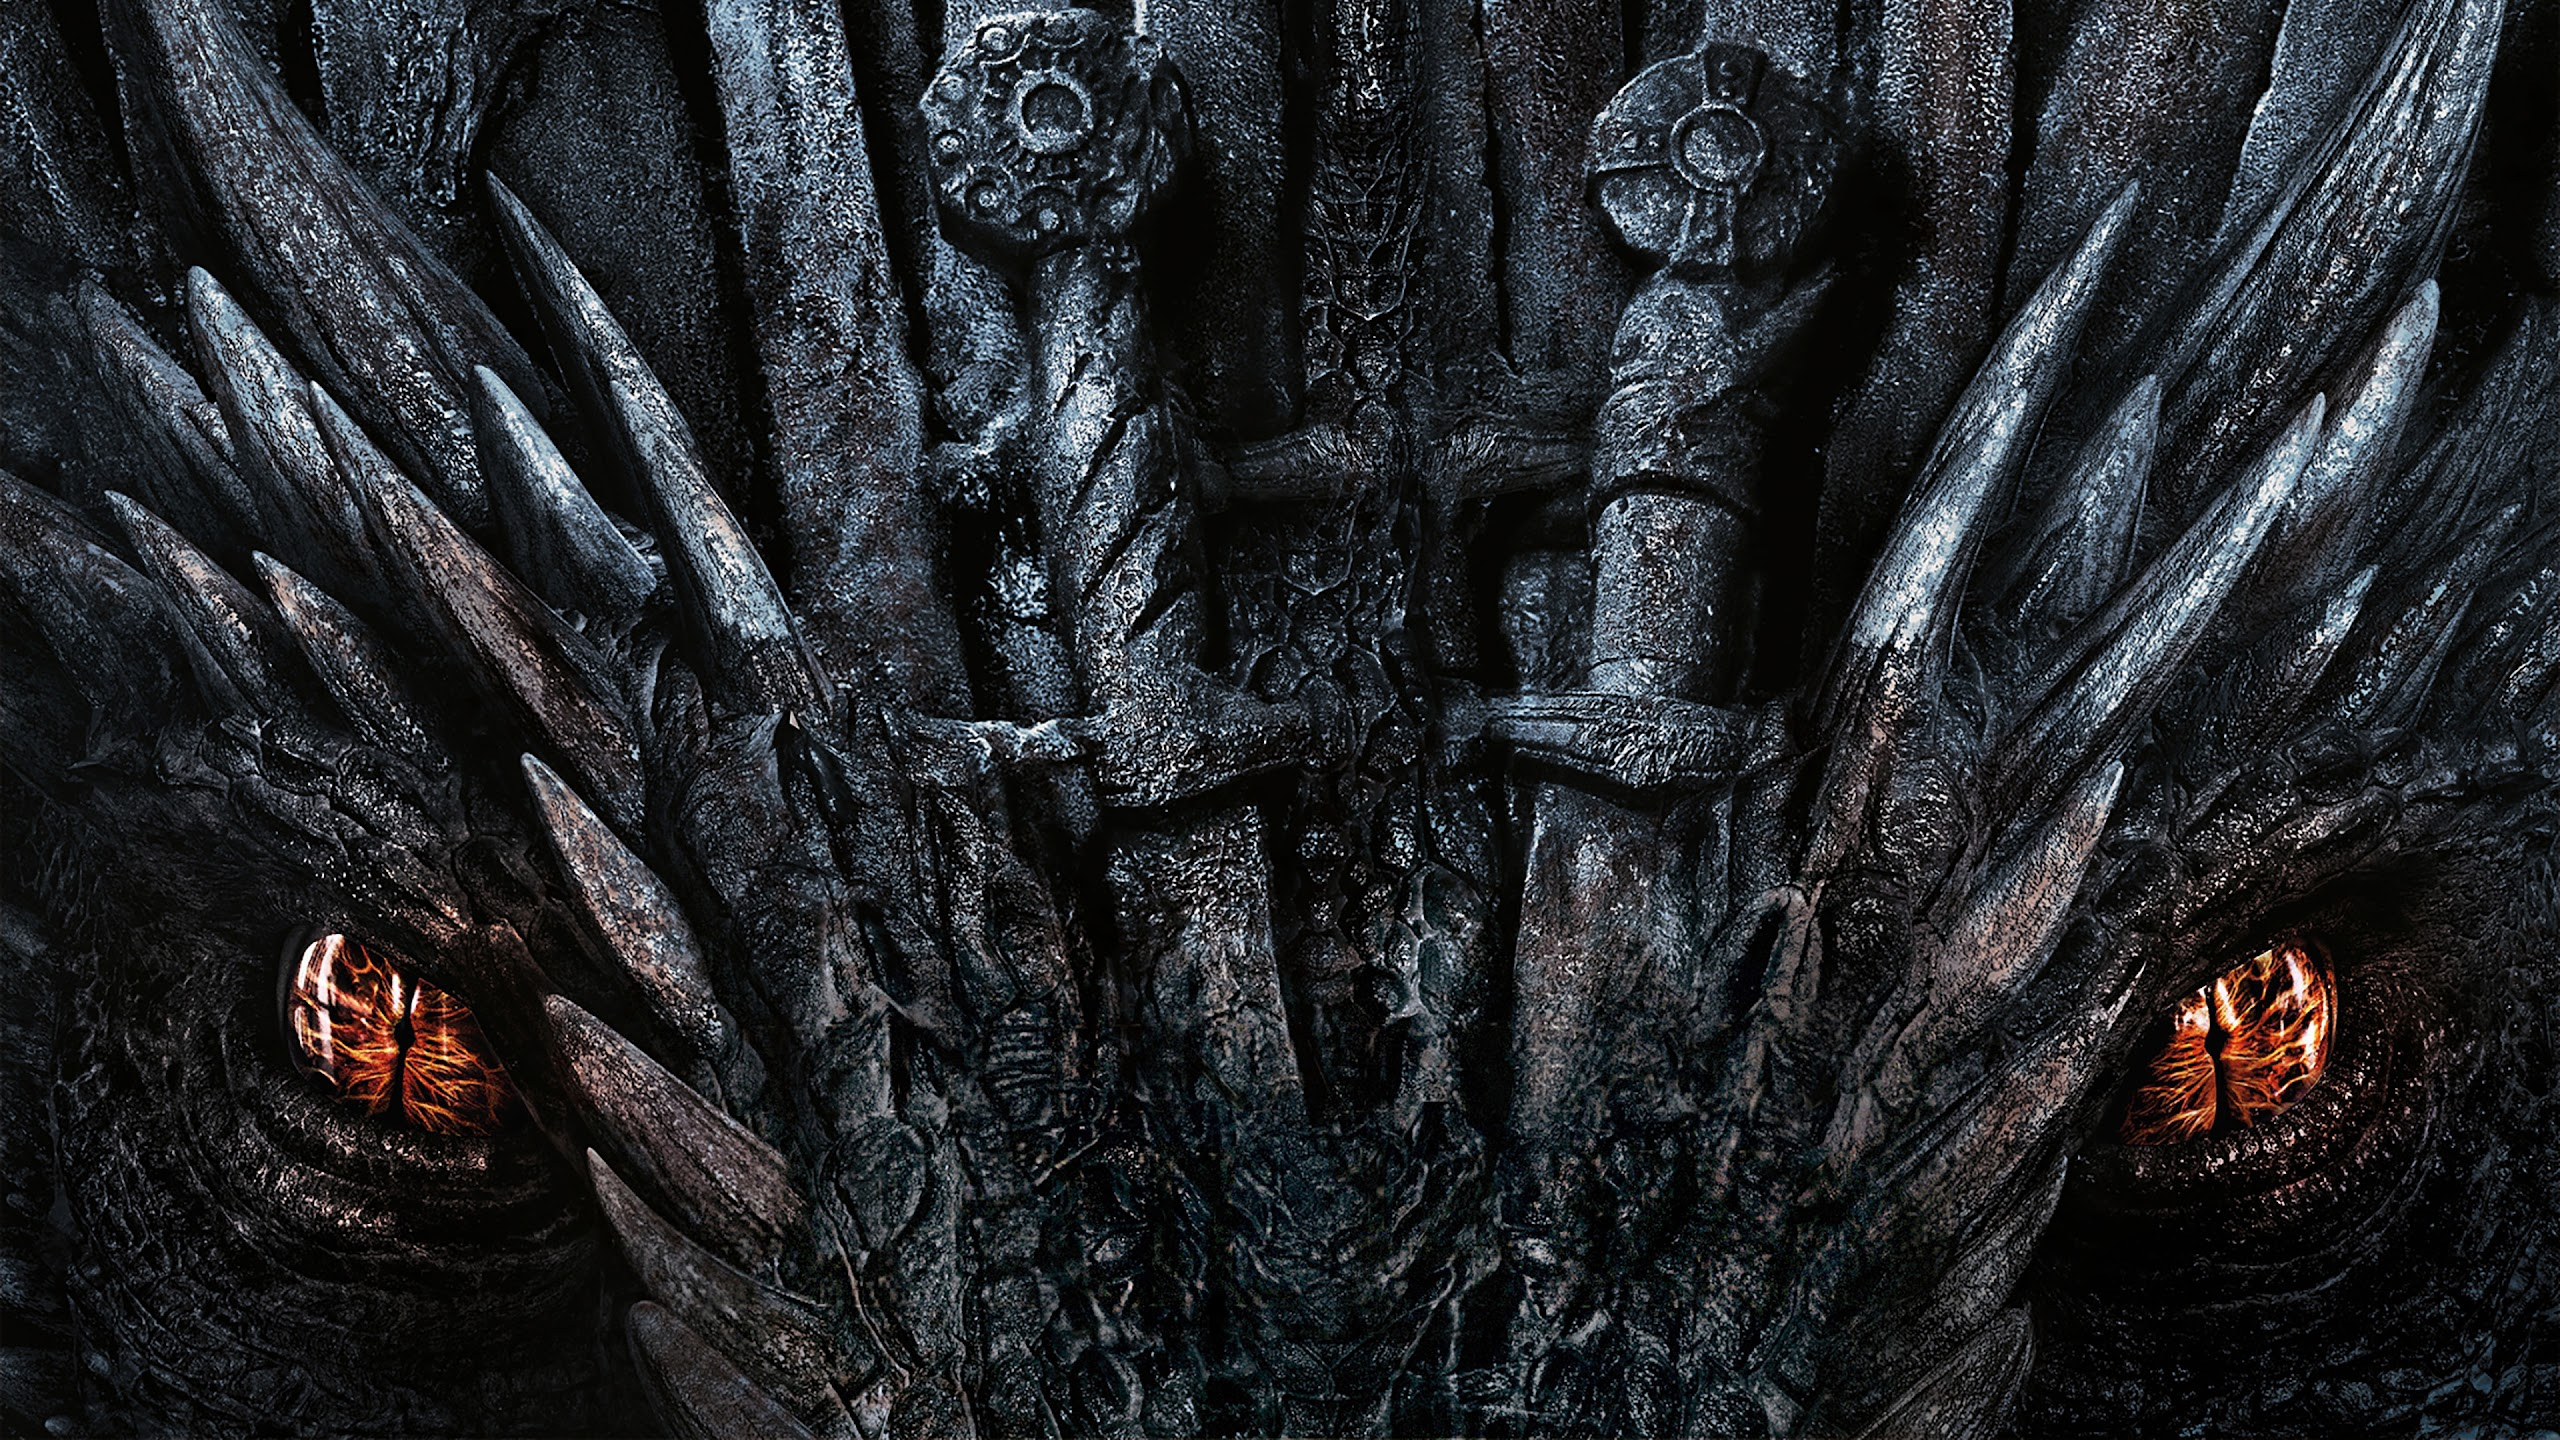 Game Of Thrones Dragon Eyes Season 8 4k Wallpaper 64